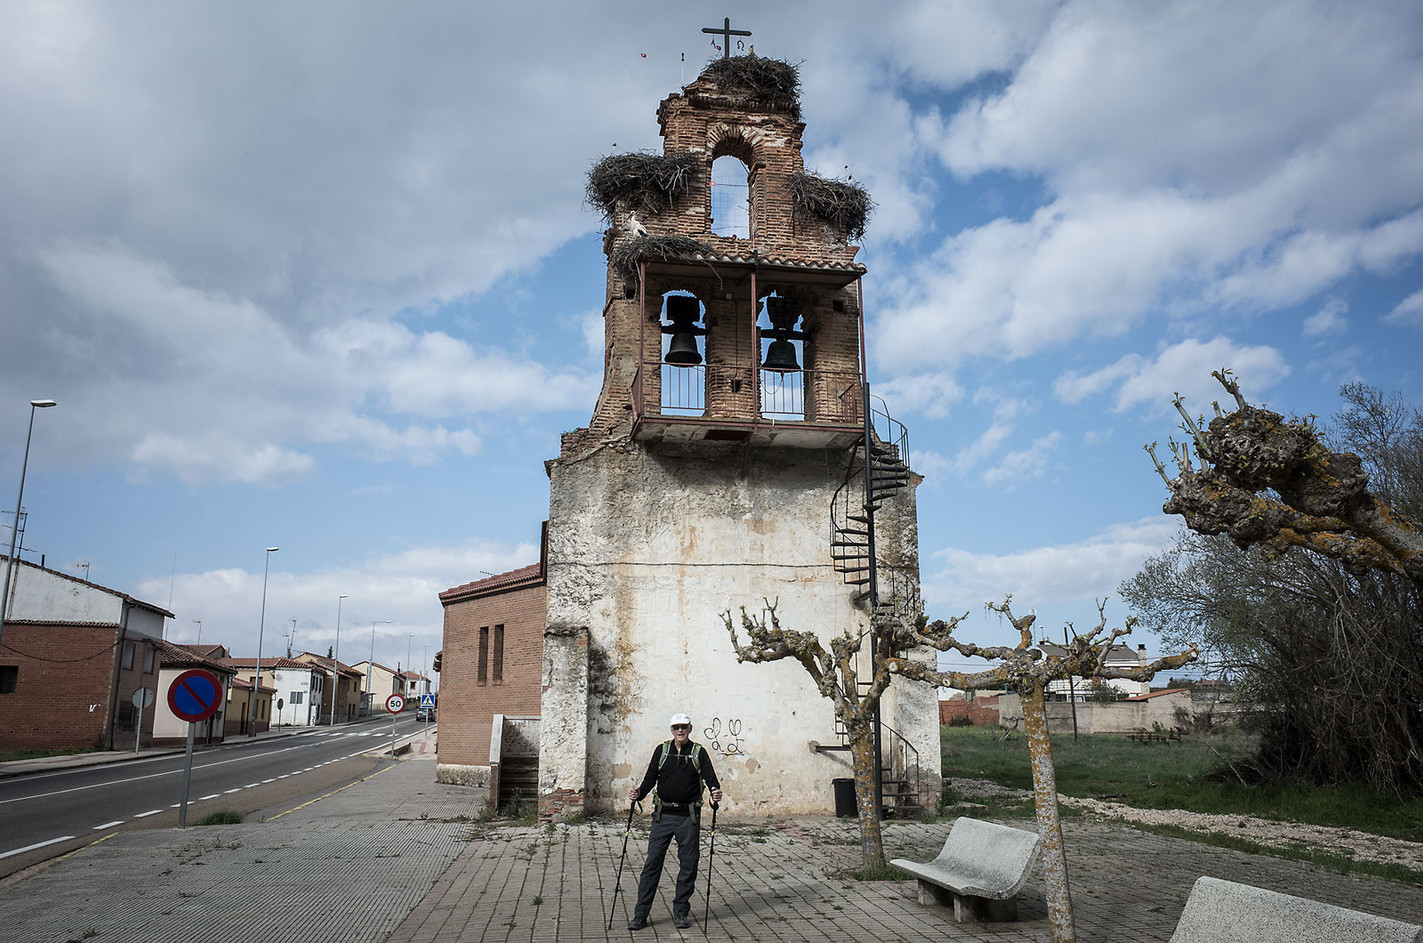 Don (United States) is recently retired and decided to walk the Camino for both health and spiritual reasons. He turned 76 two days after reaching Santiago de Compostela.  In the background are the remains of a church crowned with three enormous stork nests. The nests are a common sight atop bell towers and chapels along the central part of the Camino, as are the storks who fly about gathering dunnage.